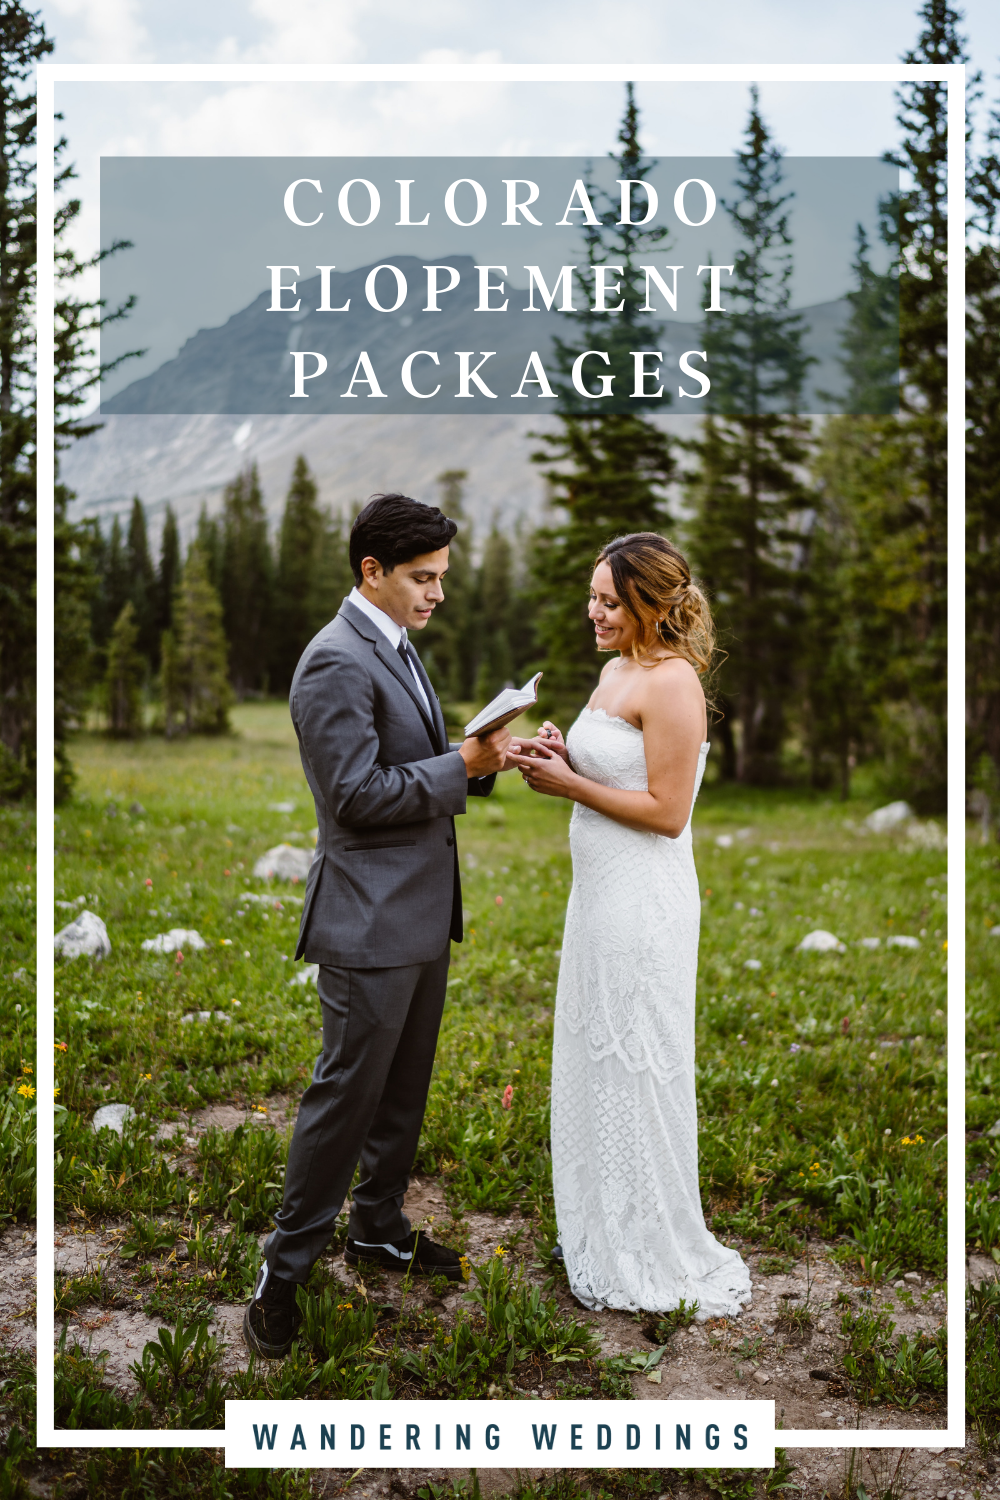 couple exchanging vows during colorado elopement, colorado elopement packages for couples to plan their wedding day